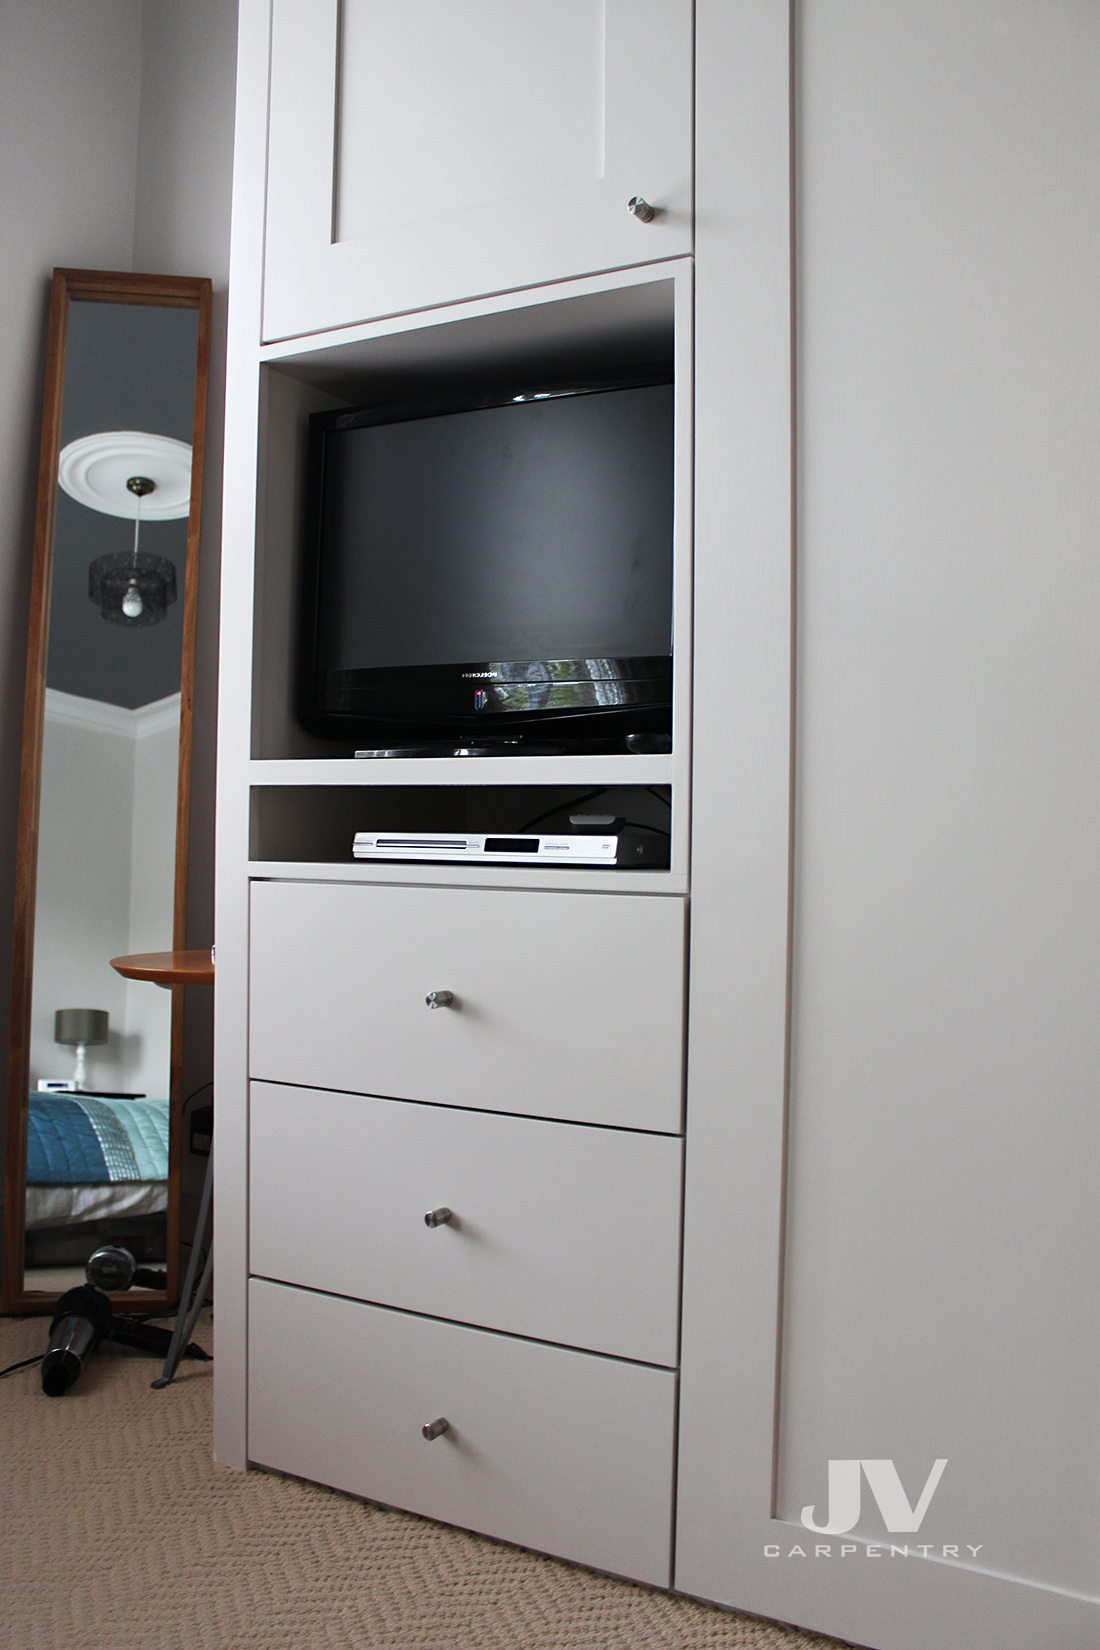 Fitted wardrobe with small TV